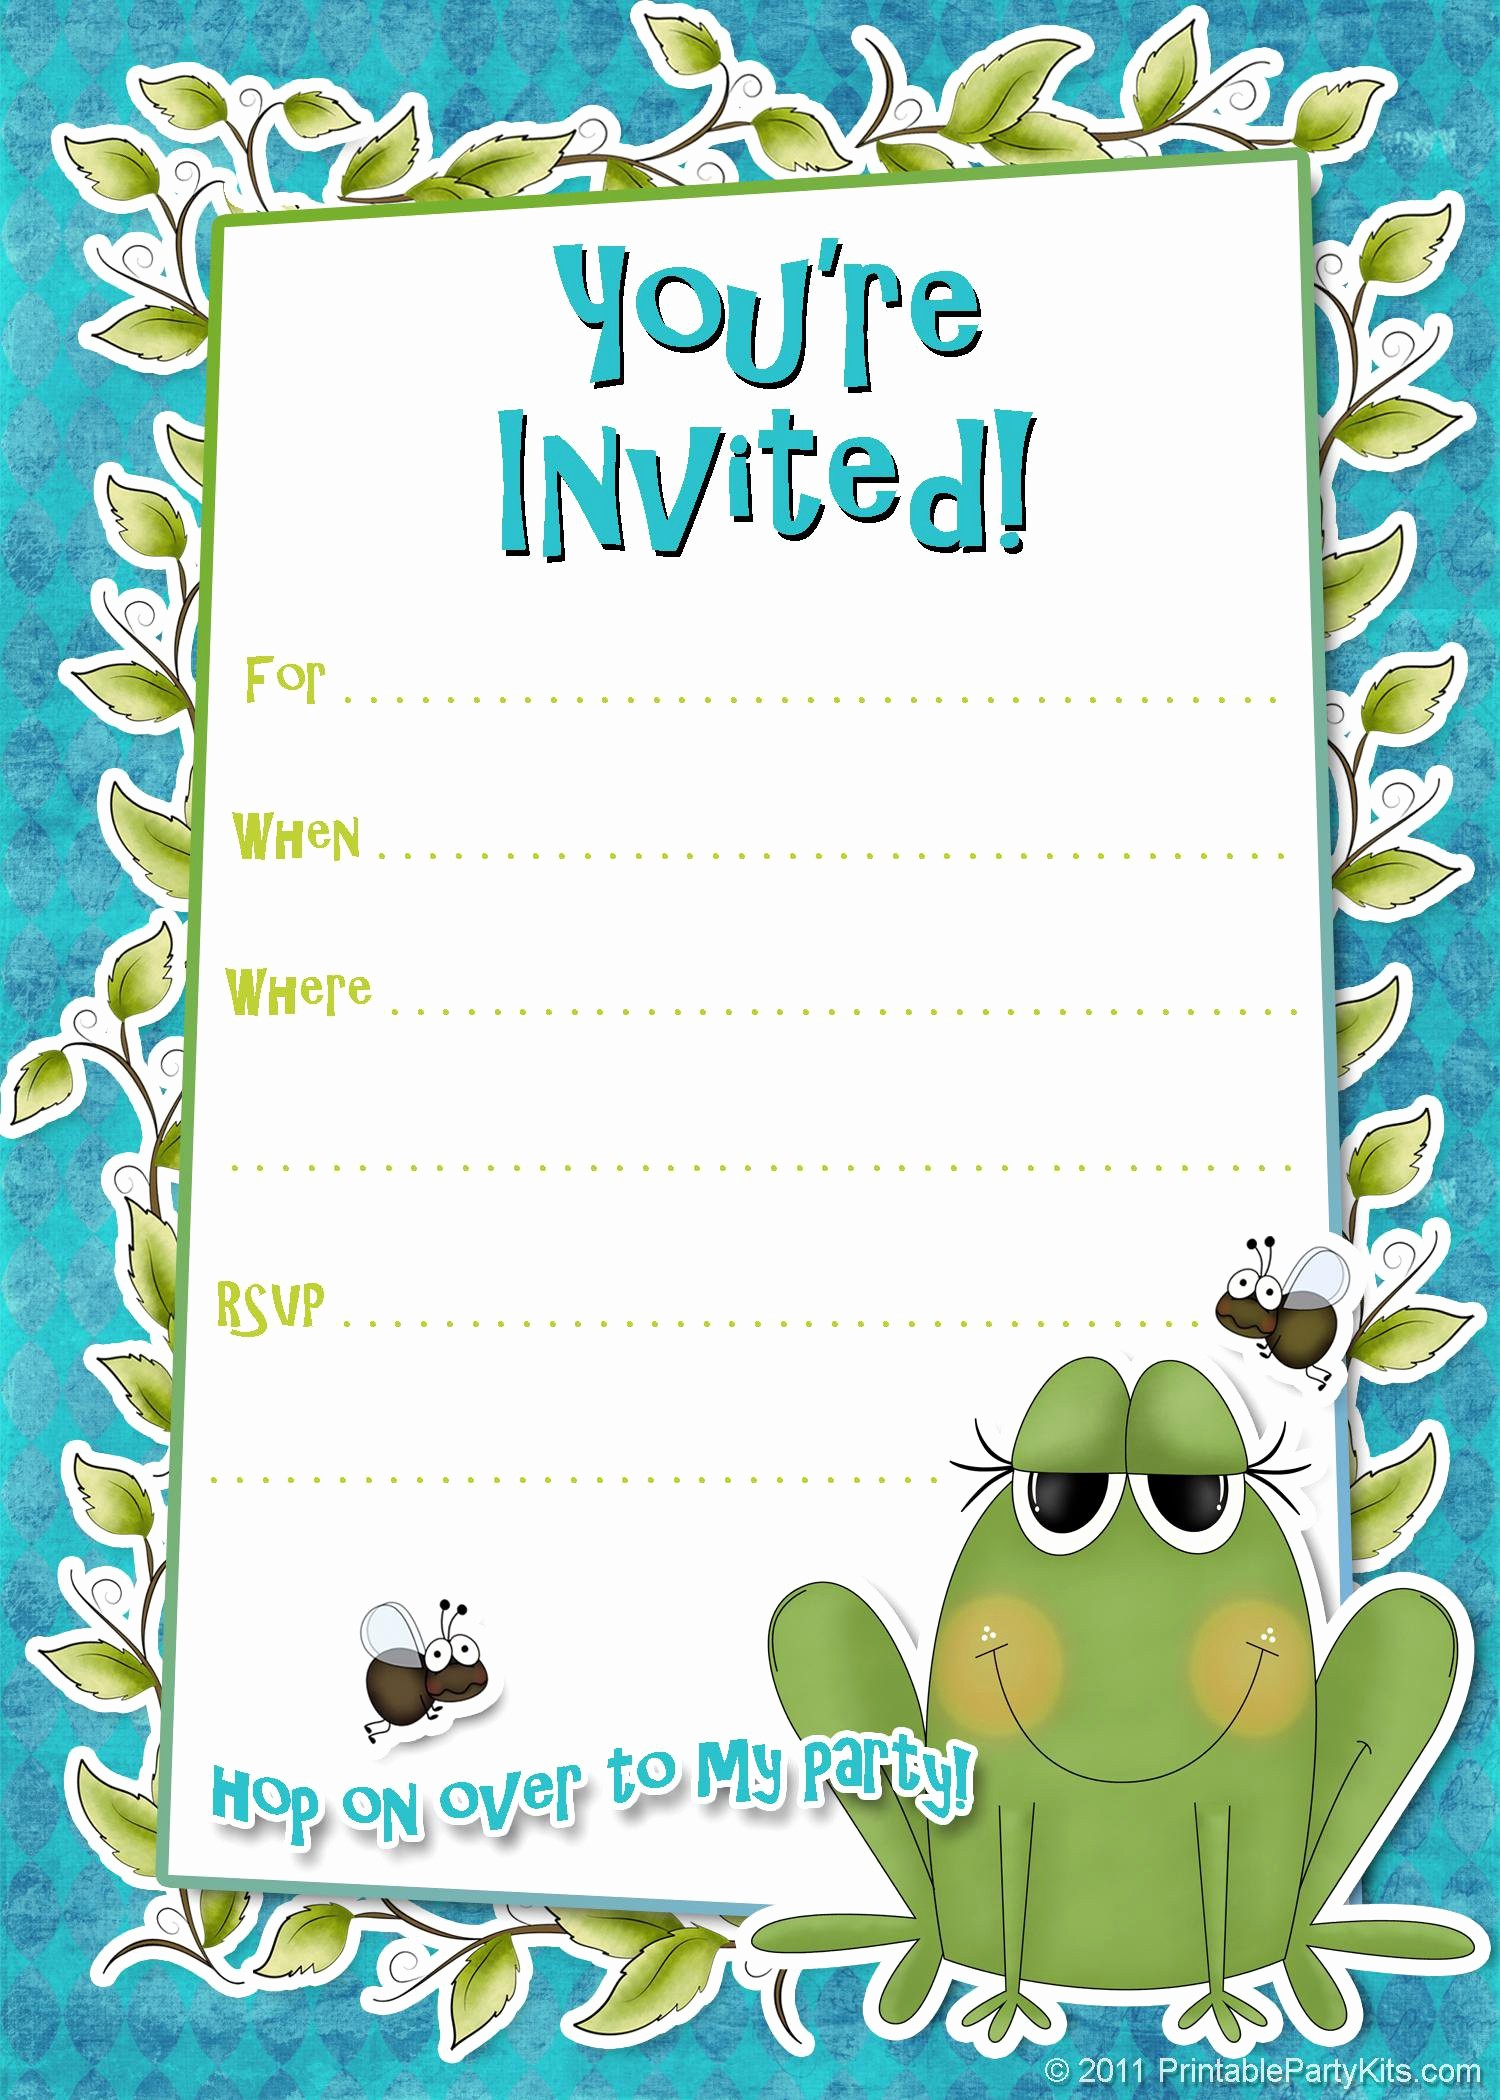 Kids Birthday Party Invites Templates Beautiful Birthday Party Invitation Template Birthday Party